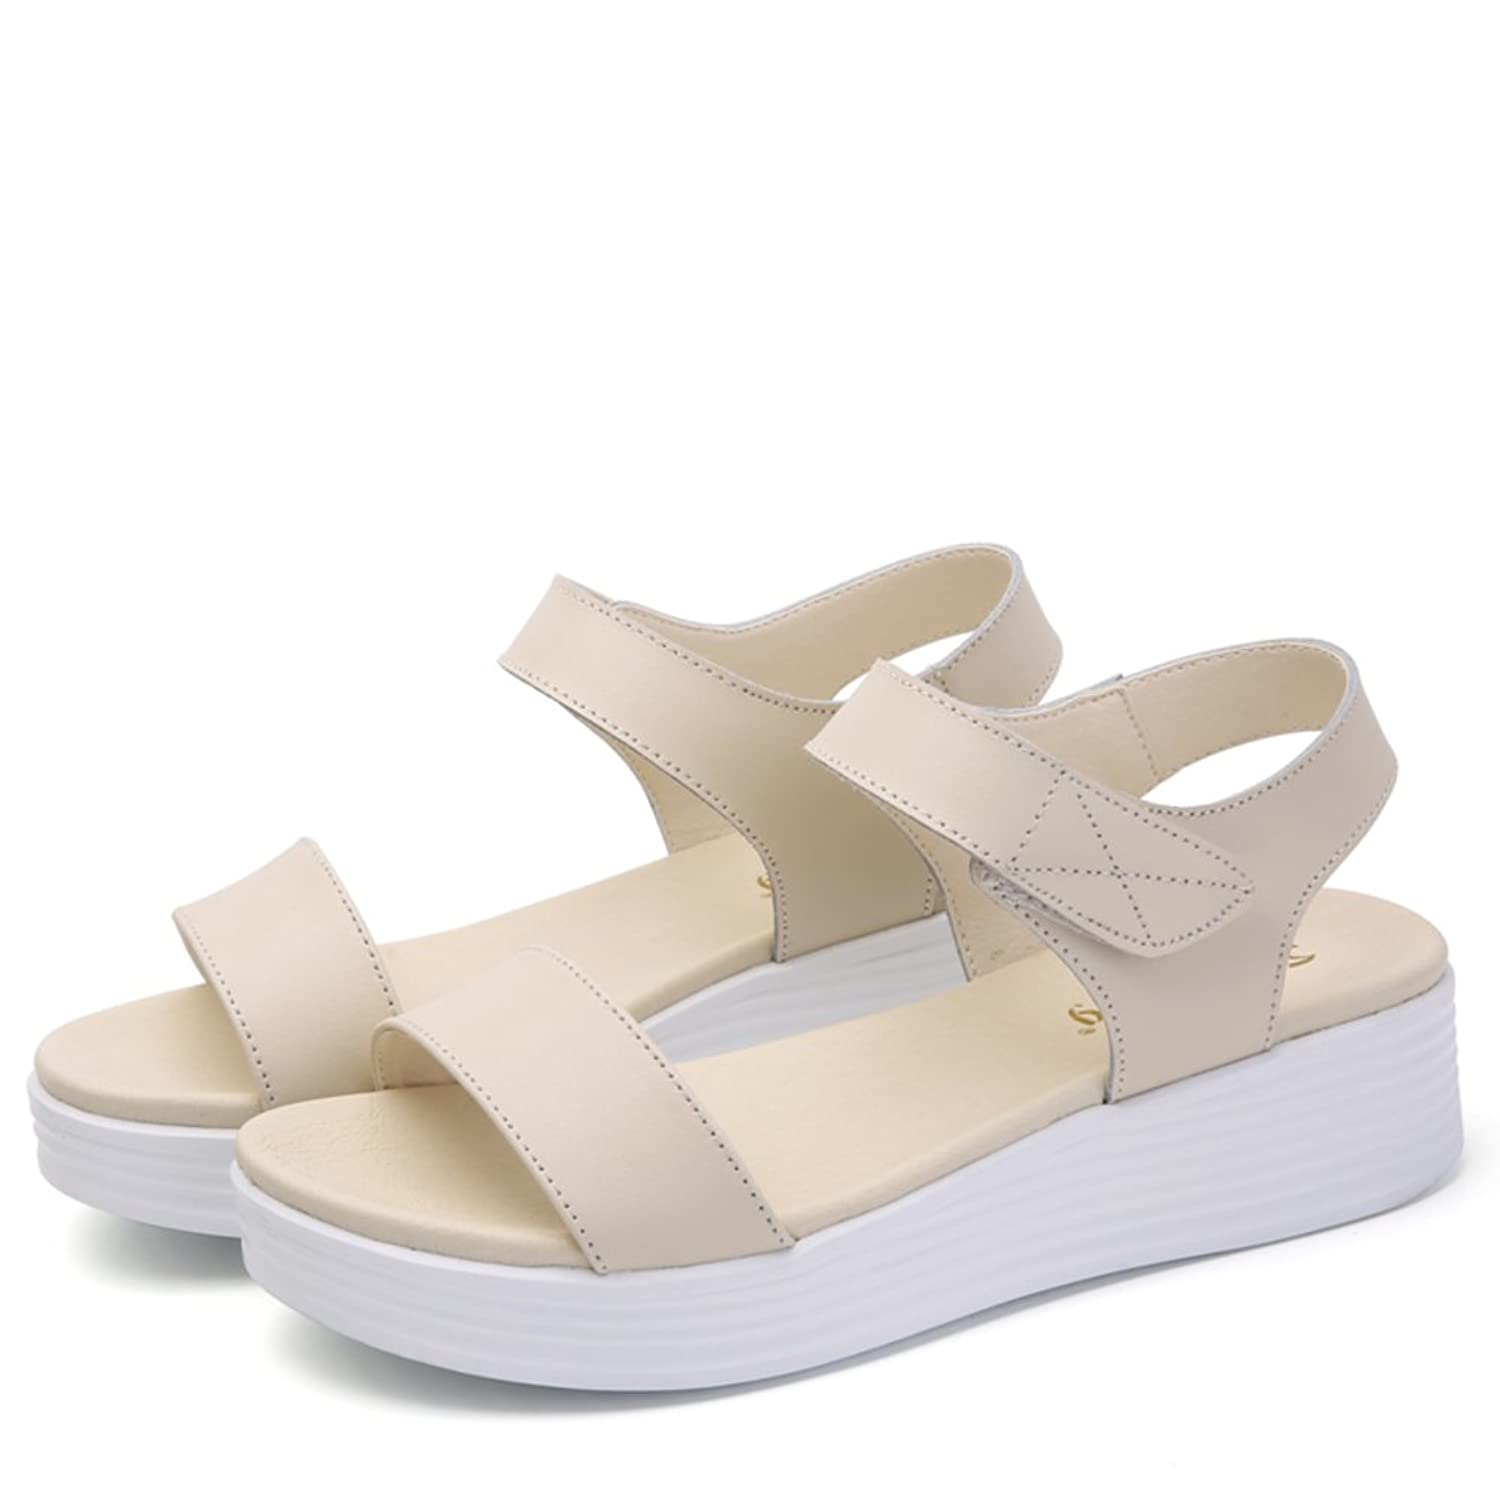 une casual Moyens talons Shoesthick plat lady Summer Soled Outlet 6BqzPn